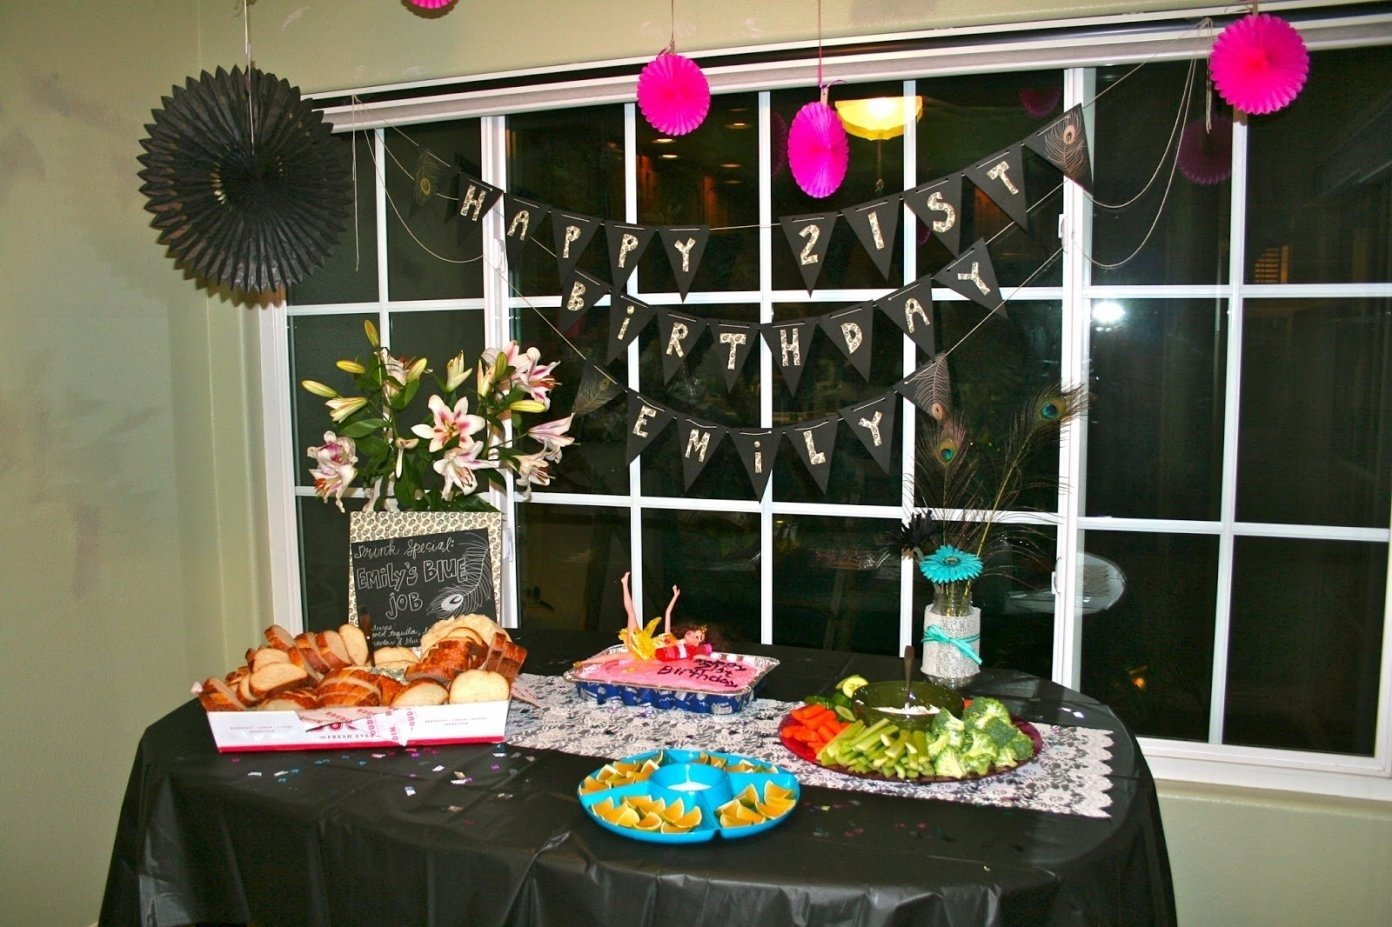 10 Amazing Party Ideas For 21St Birthday 21st birthday party table decorations christianlouboutinpascheret 1 2021